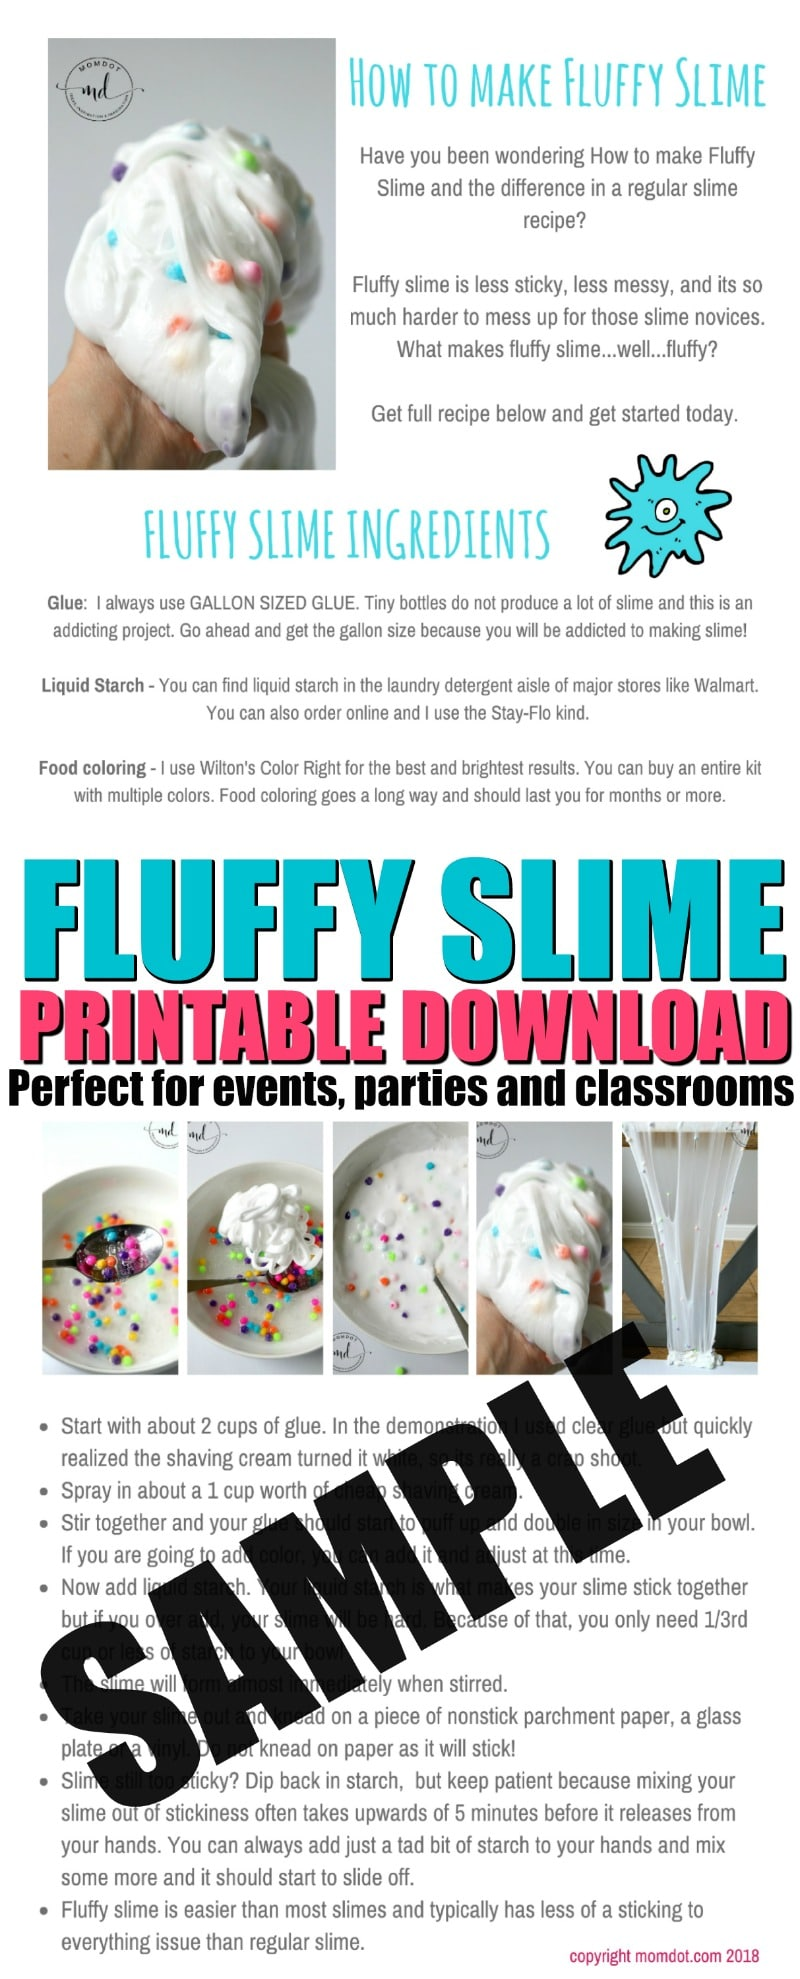 Fluffy Slime Free Printable